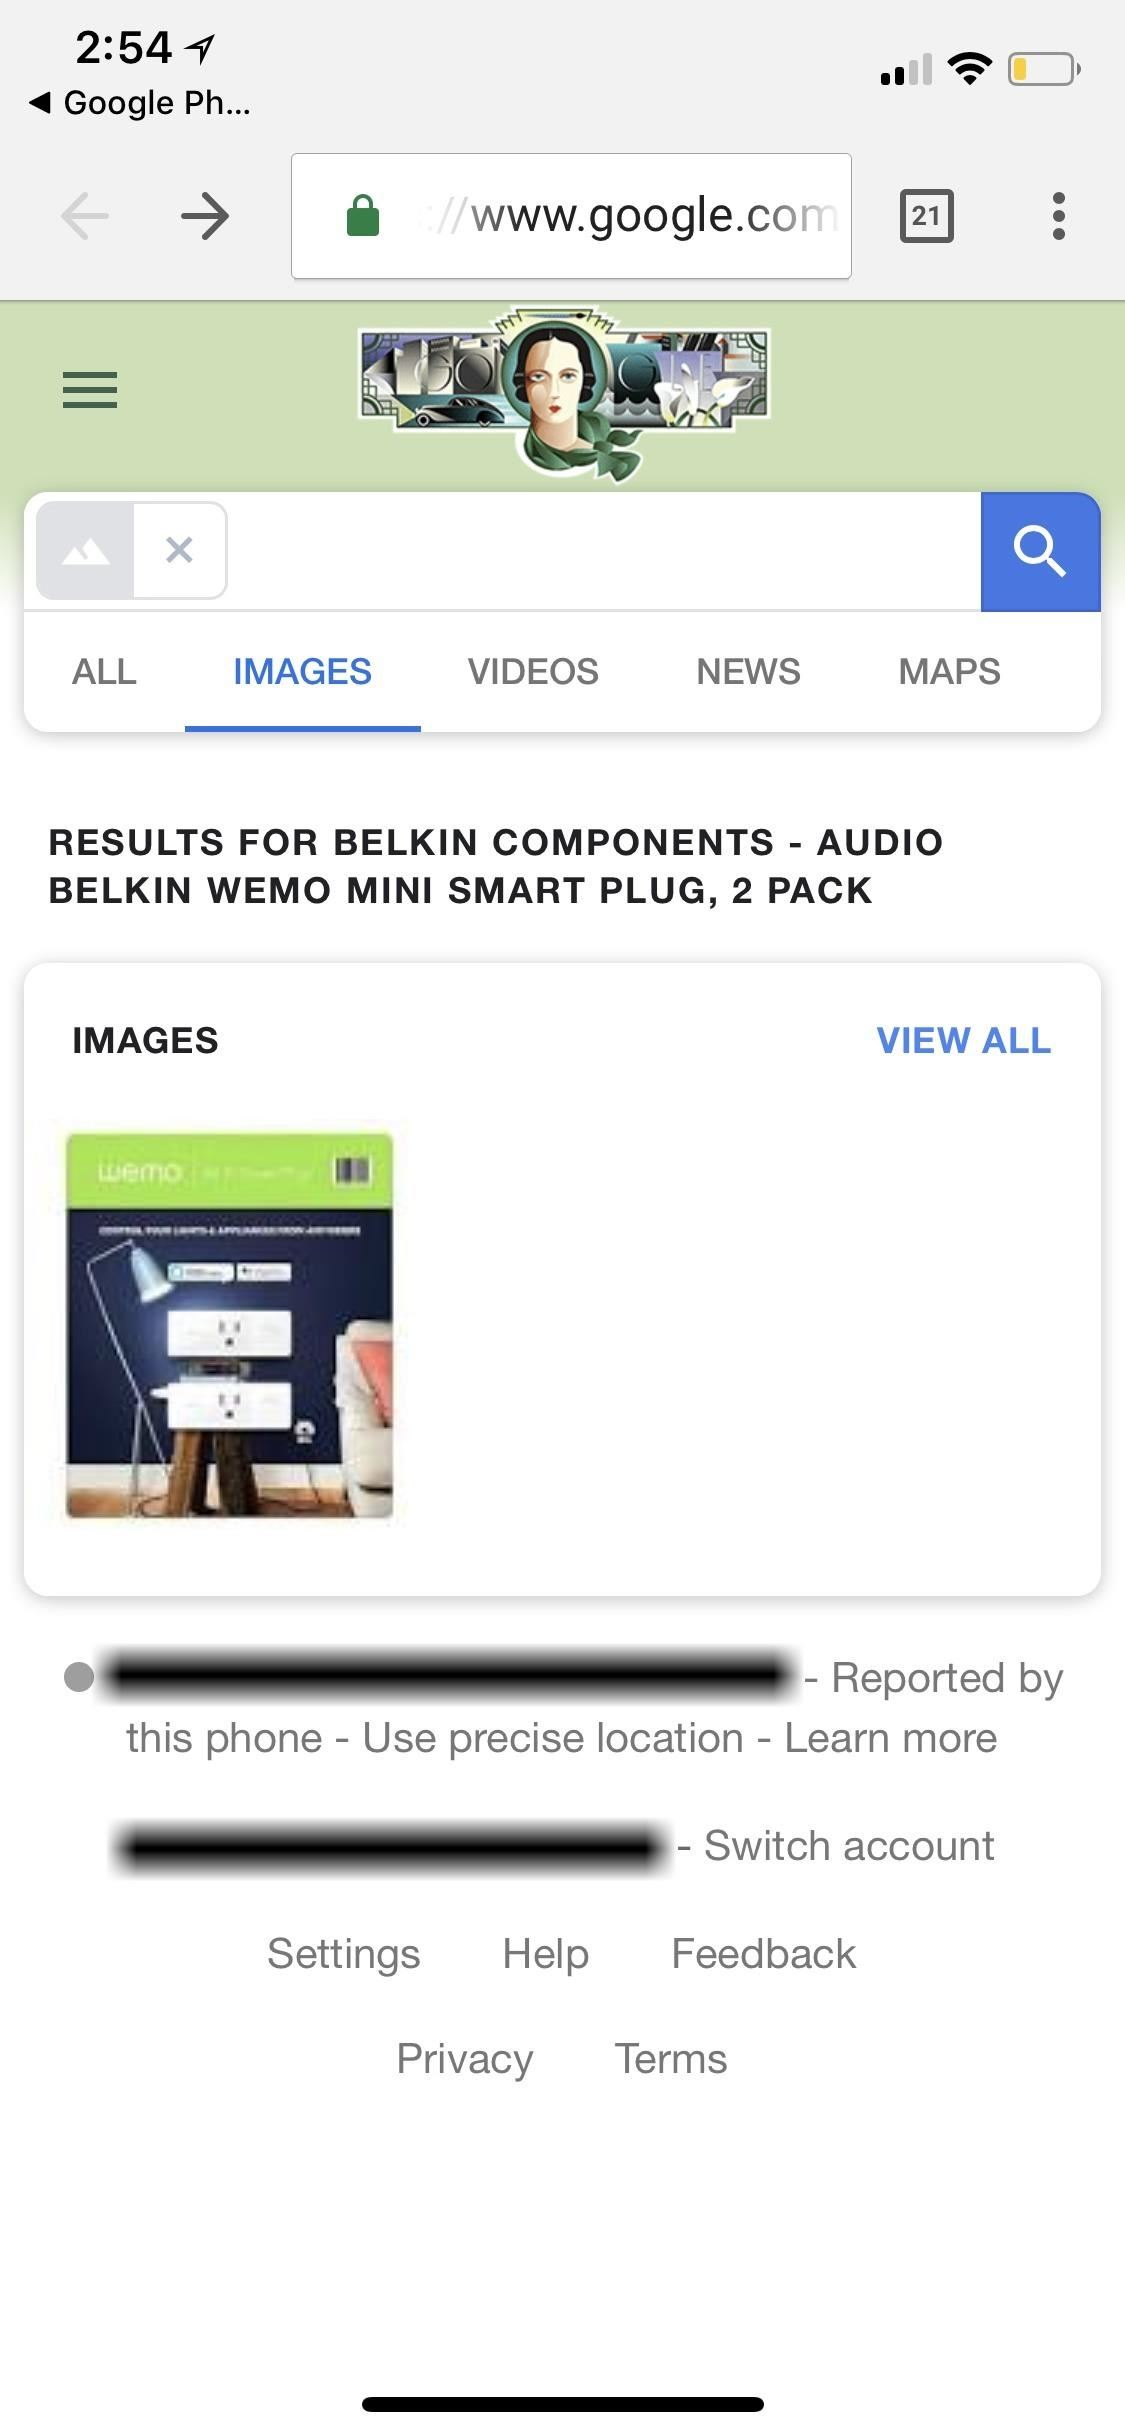 Google Photos 101: How to Track Down & Buy Anything in Your Pictures with Google Lens